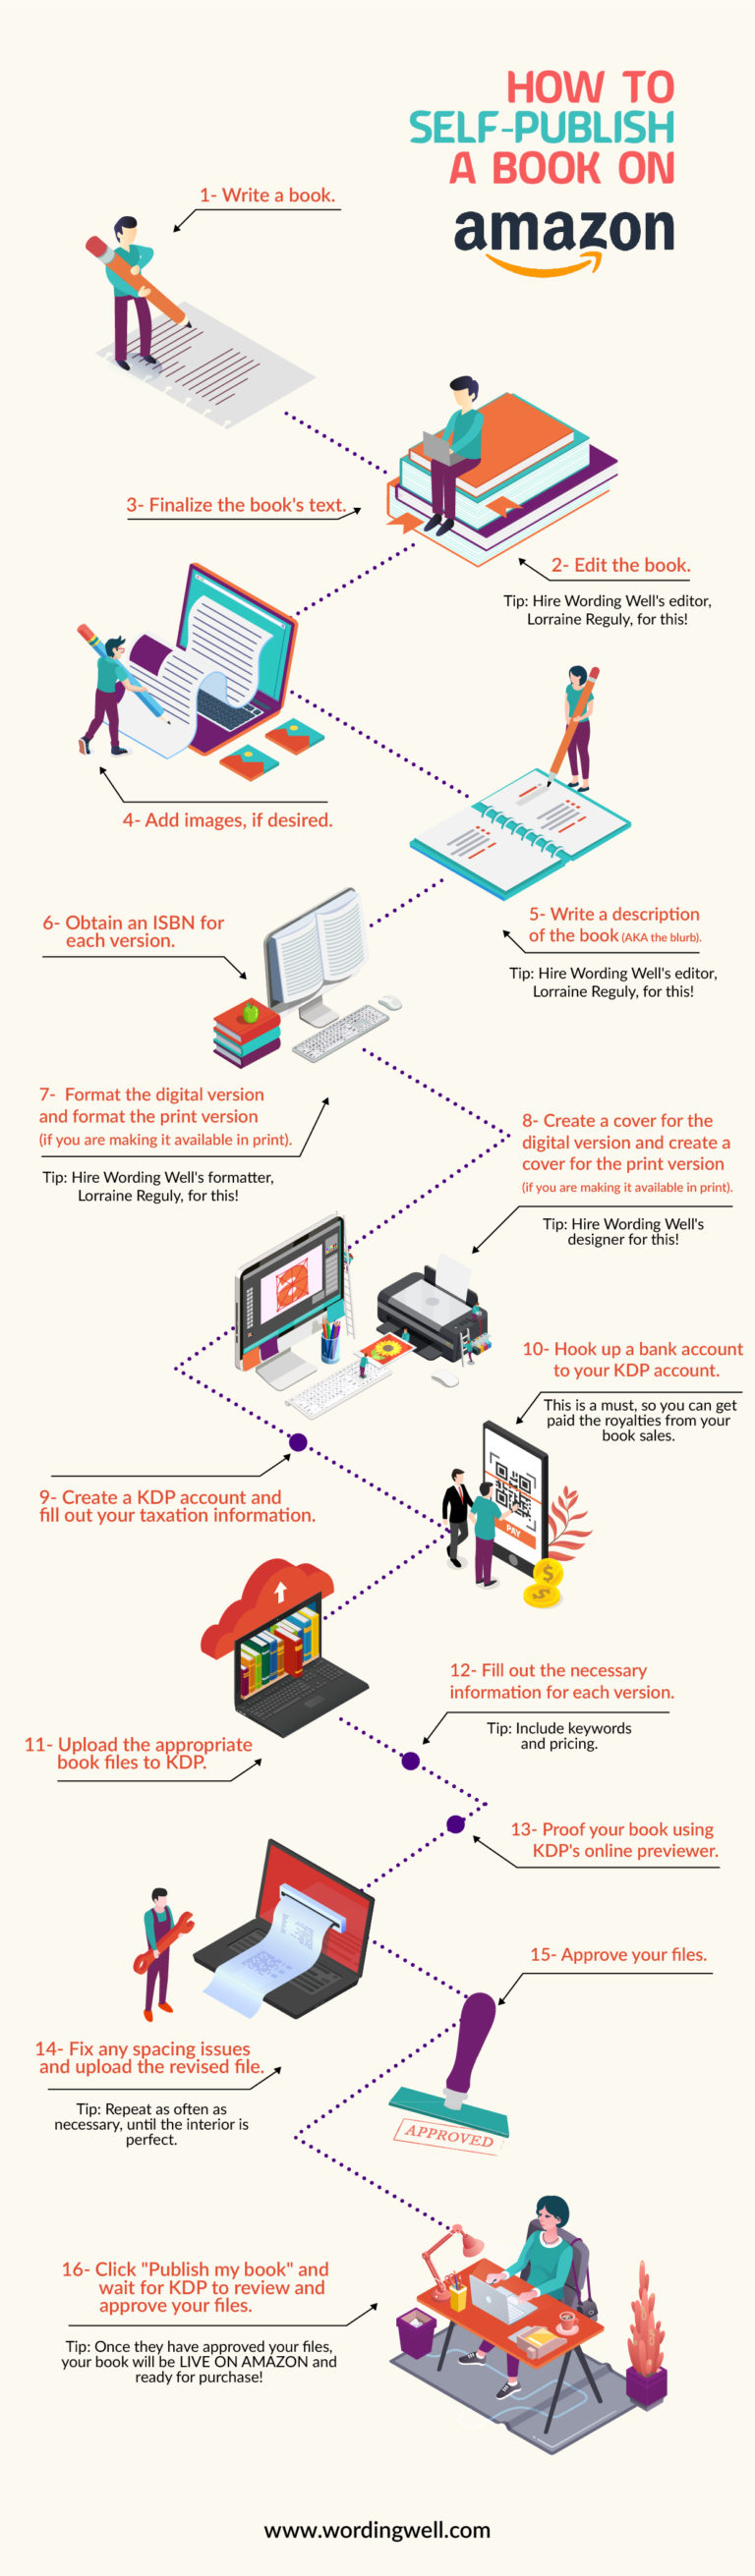 Infographic showing how to self-publish on Amazon